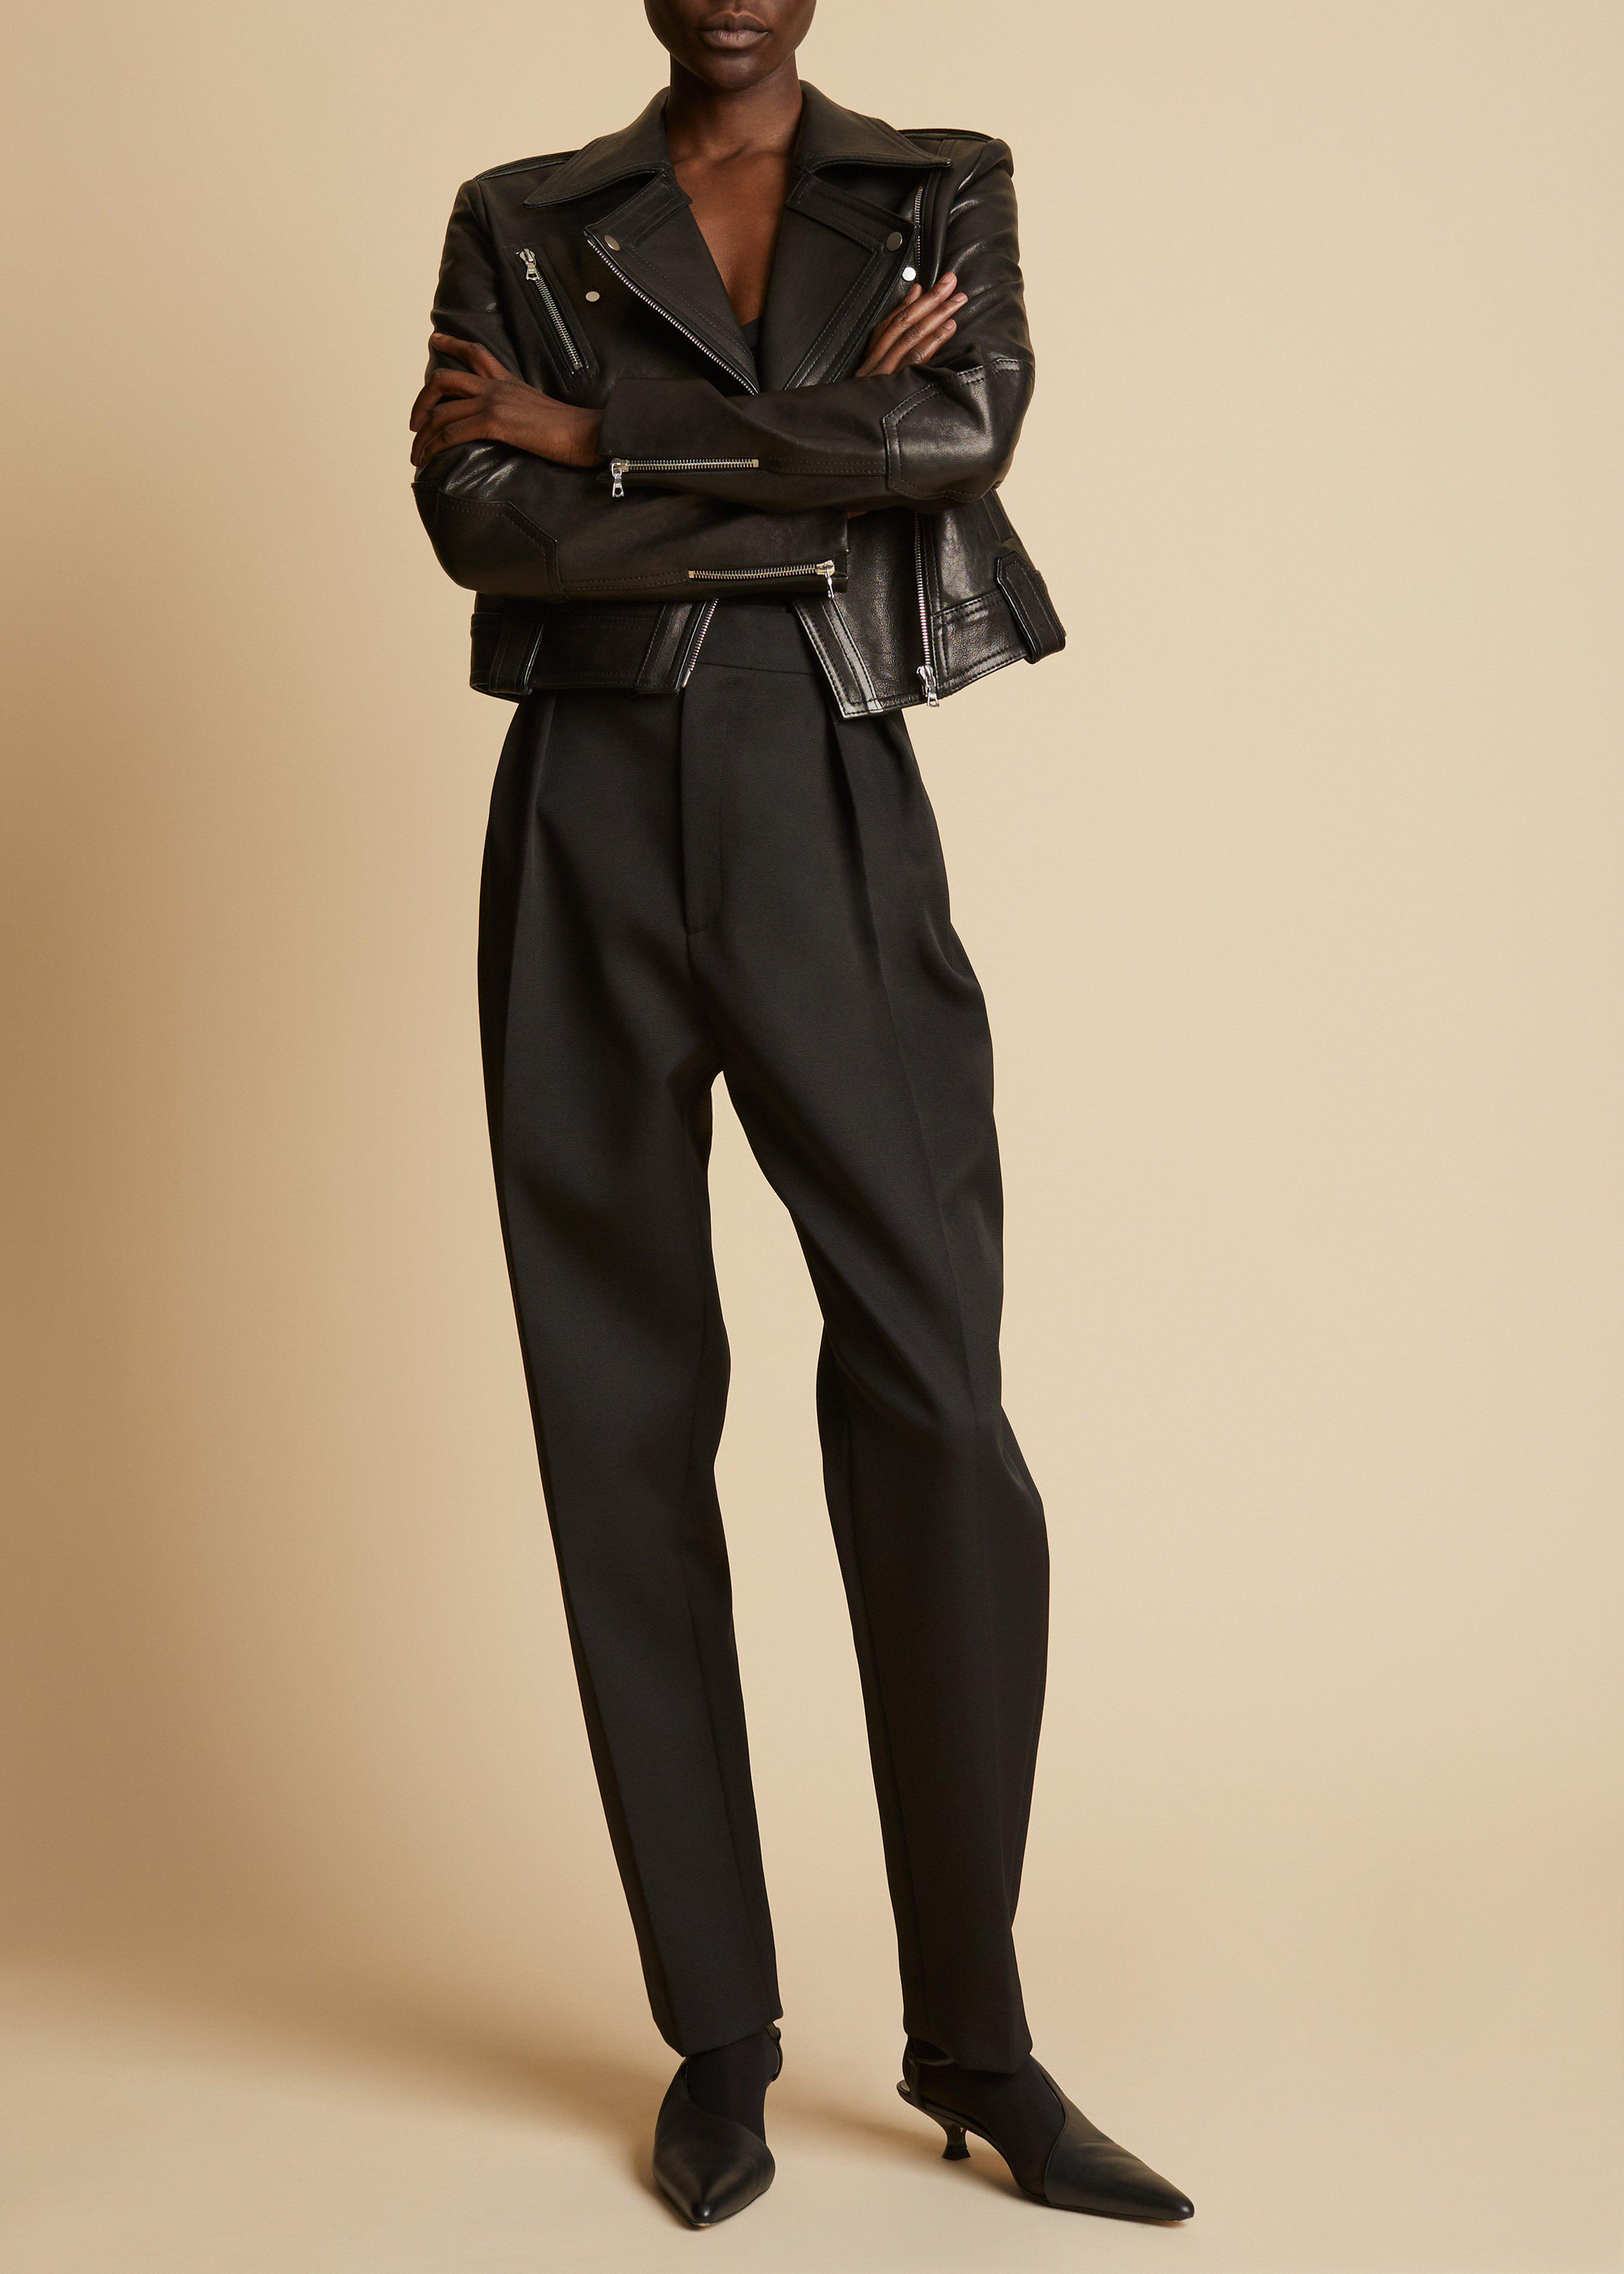 The Antonia Jacket in Black Leather